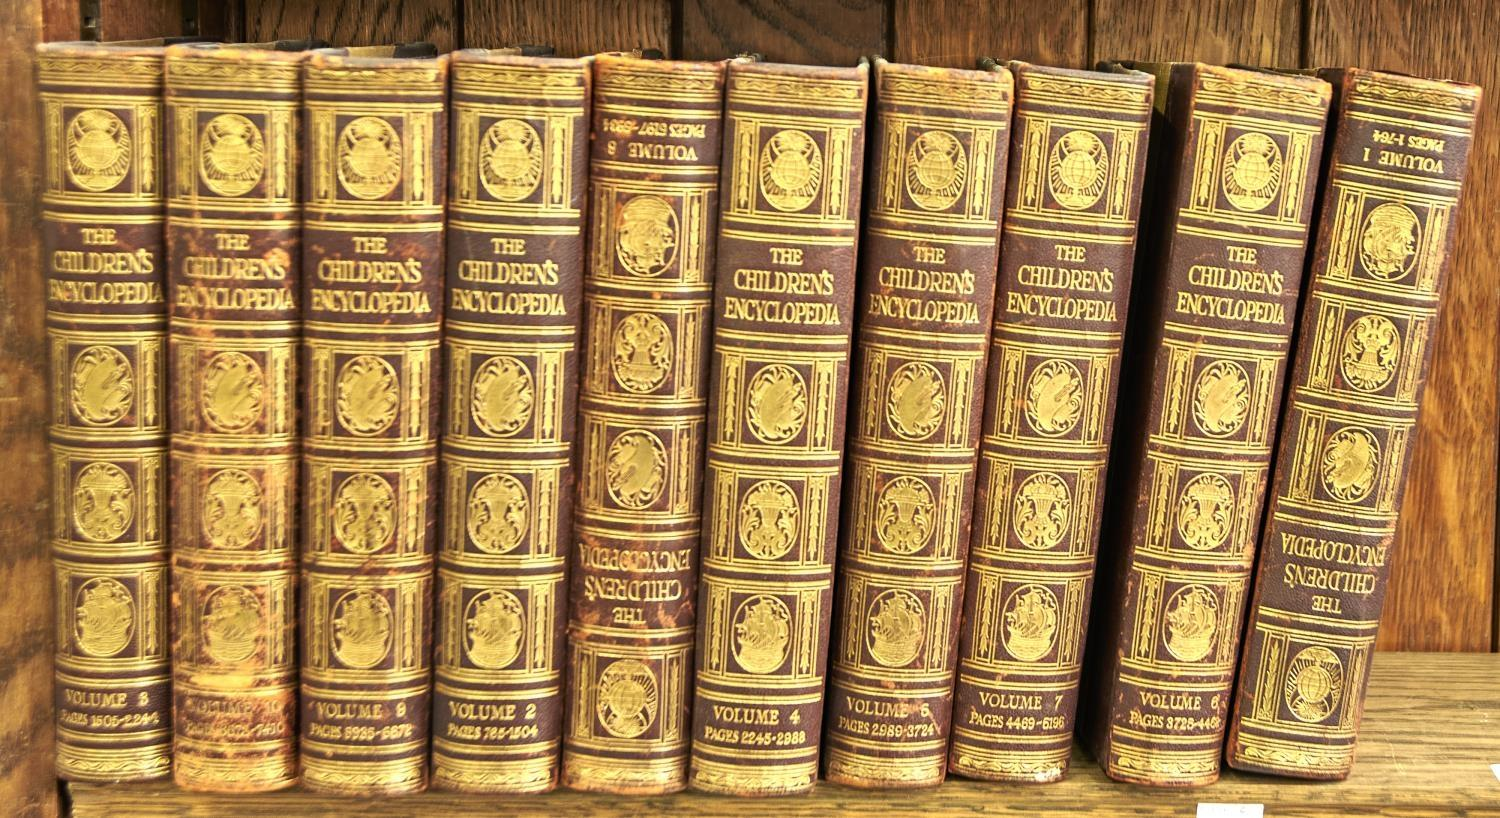 SOTHEBY'S - ART AT AUCTION, ANNUAL VOLUME, 1970S/80S (29) AND A SET OF CHILDREN'S ENCYCLOPAEDIA